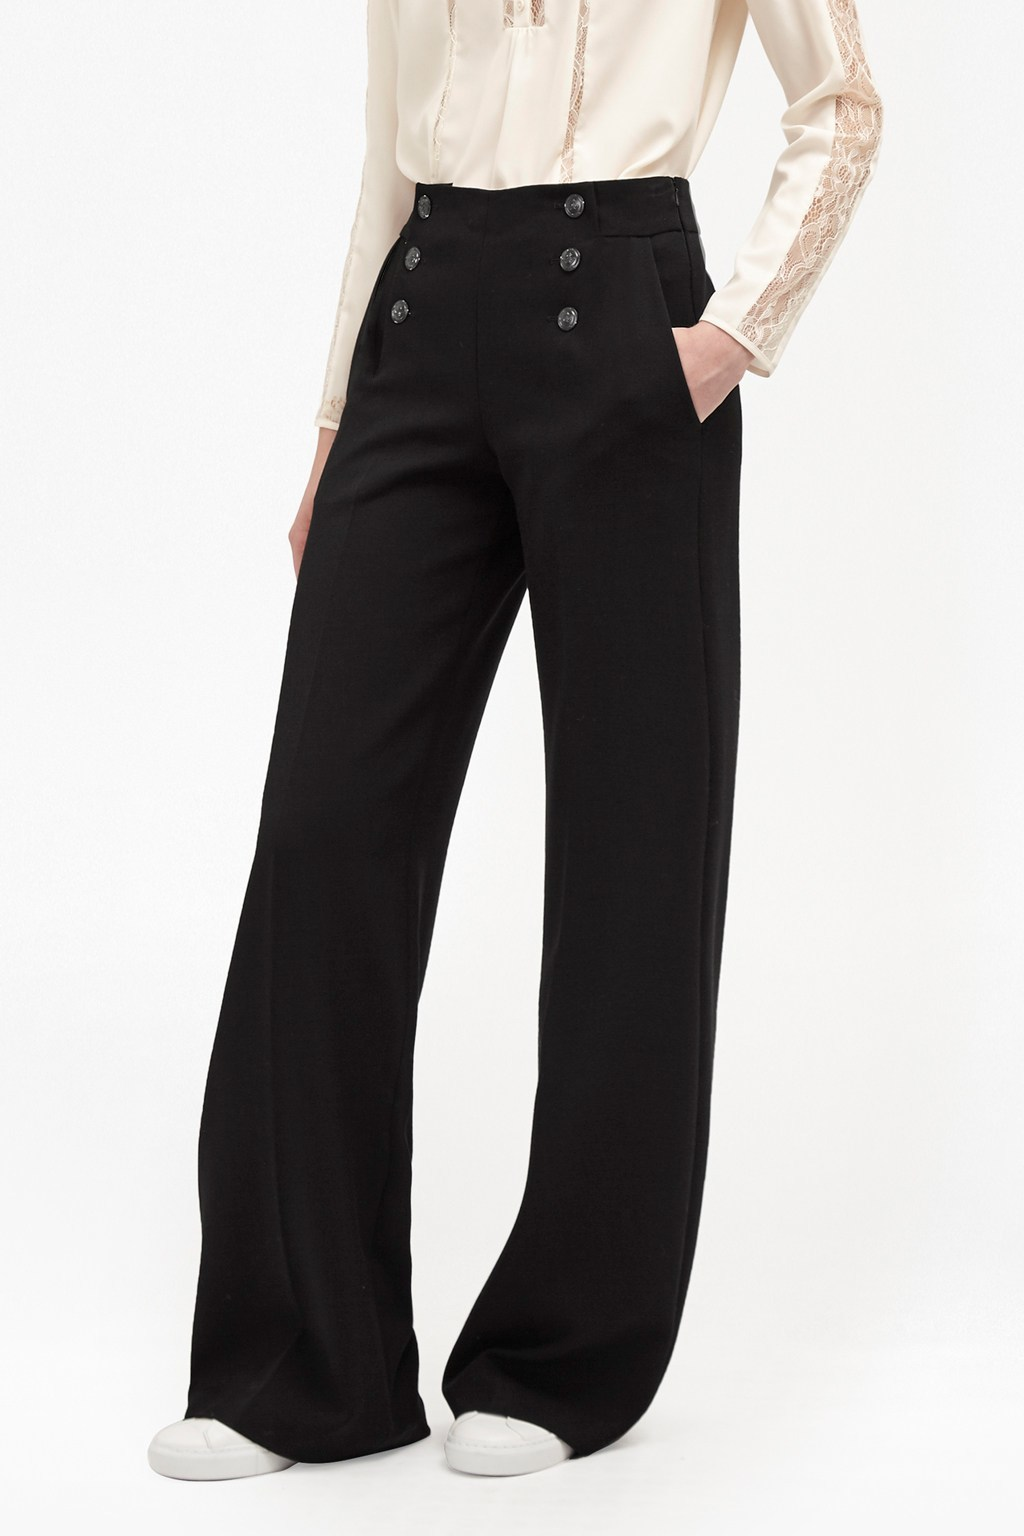 Sundae Suiting Sailor Trousers Dark Grey Melange - length: standard; pattern: plain; waist: mid/regular rise; predominant colour: charcoal; occasions: evening; fibres: polyester/polyamide - stretch; texture group: crepes; fit: wide leg; pattern type: fabric; style: standard; season: a/w 2016